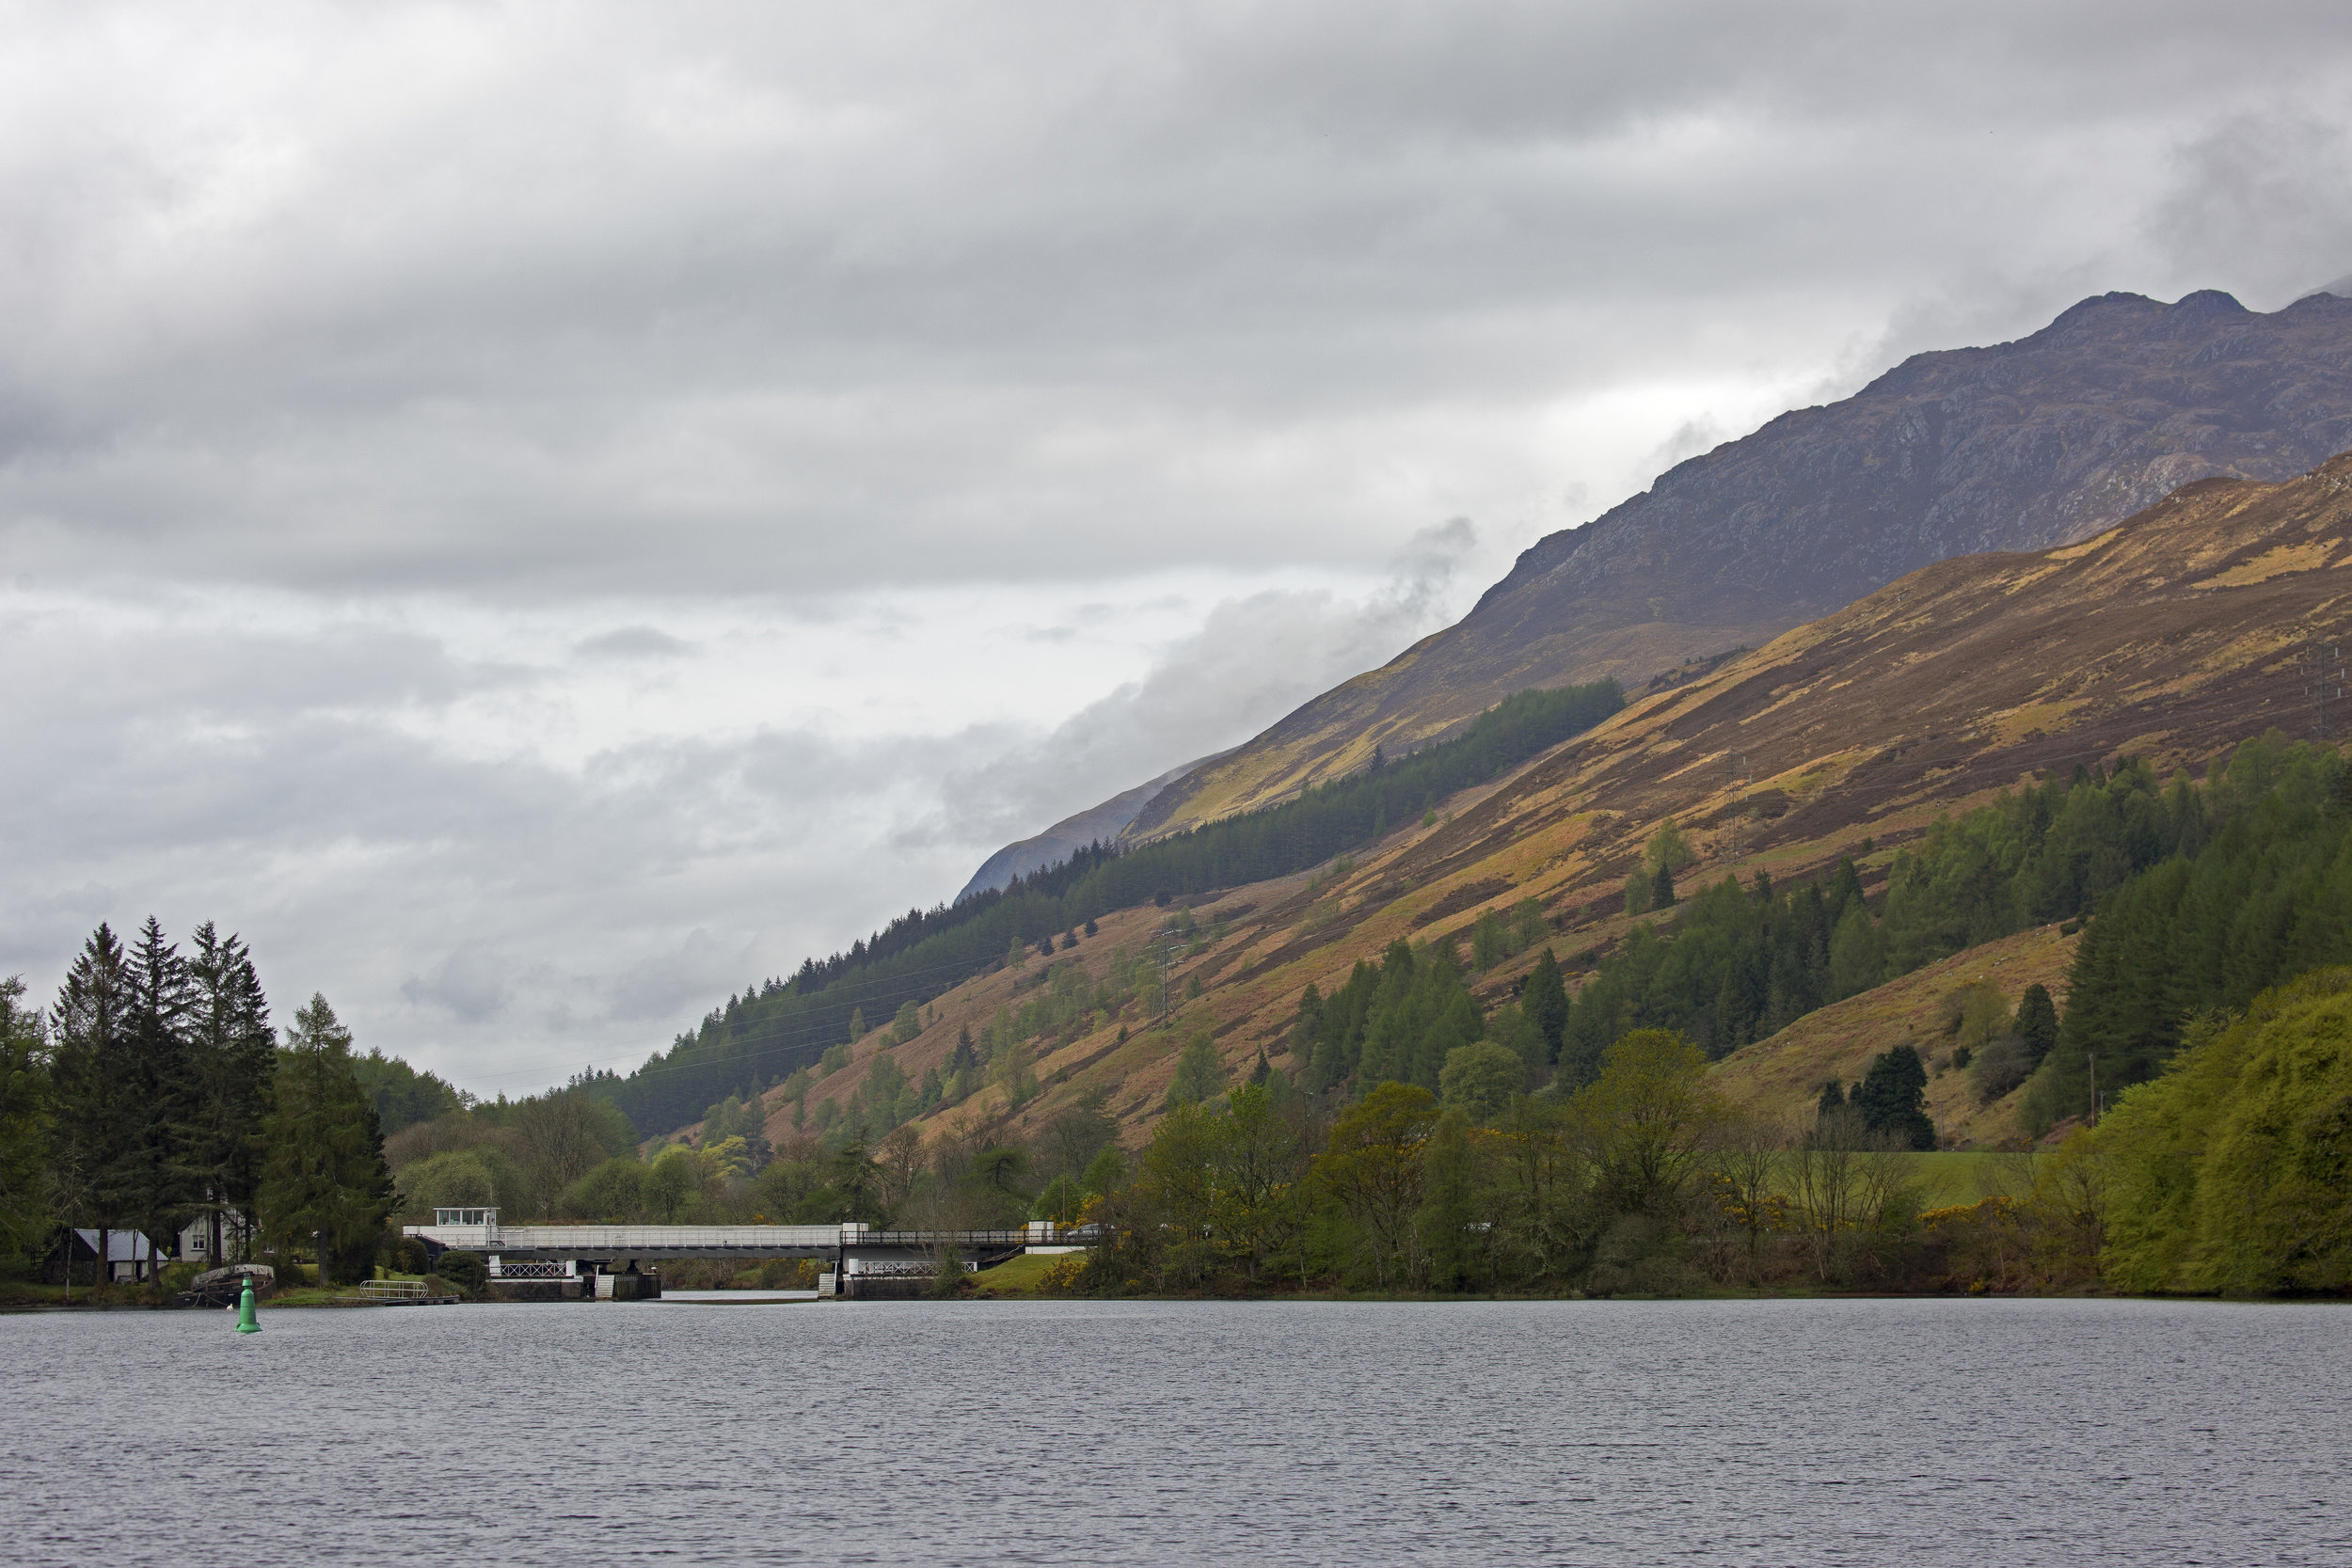 Approaching the Laggan Swing Bridge at the end of Loch Oich.